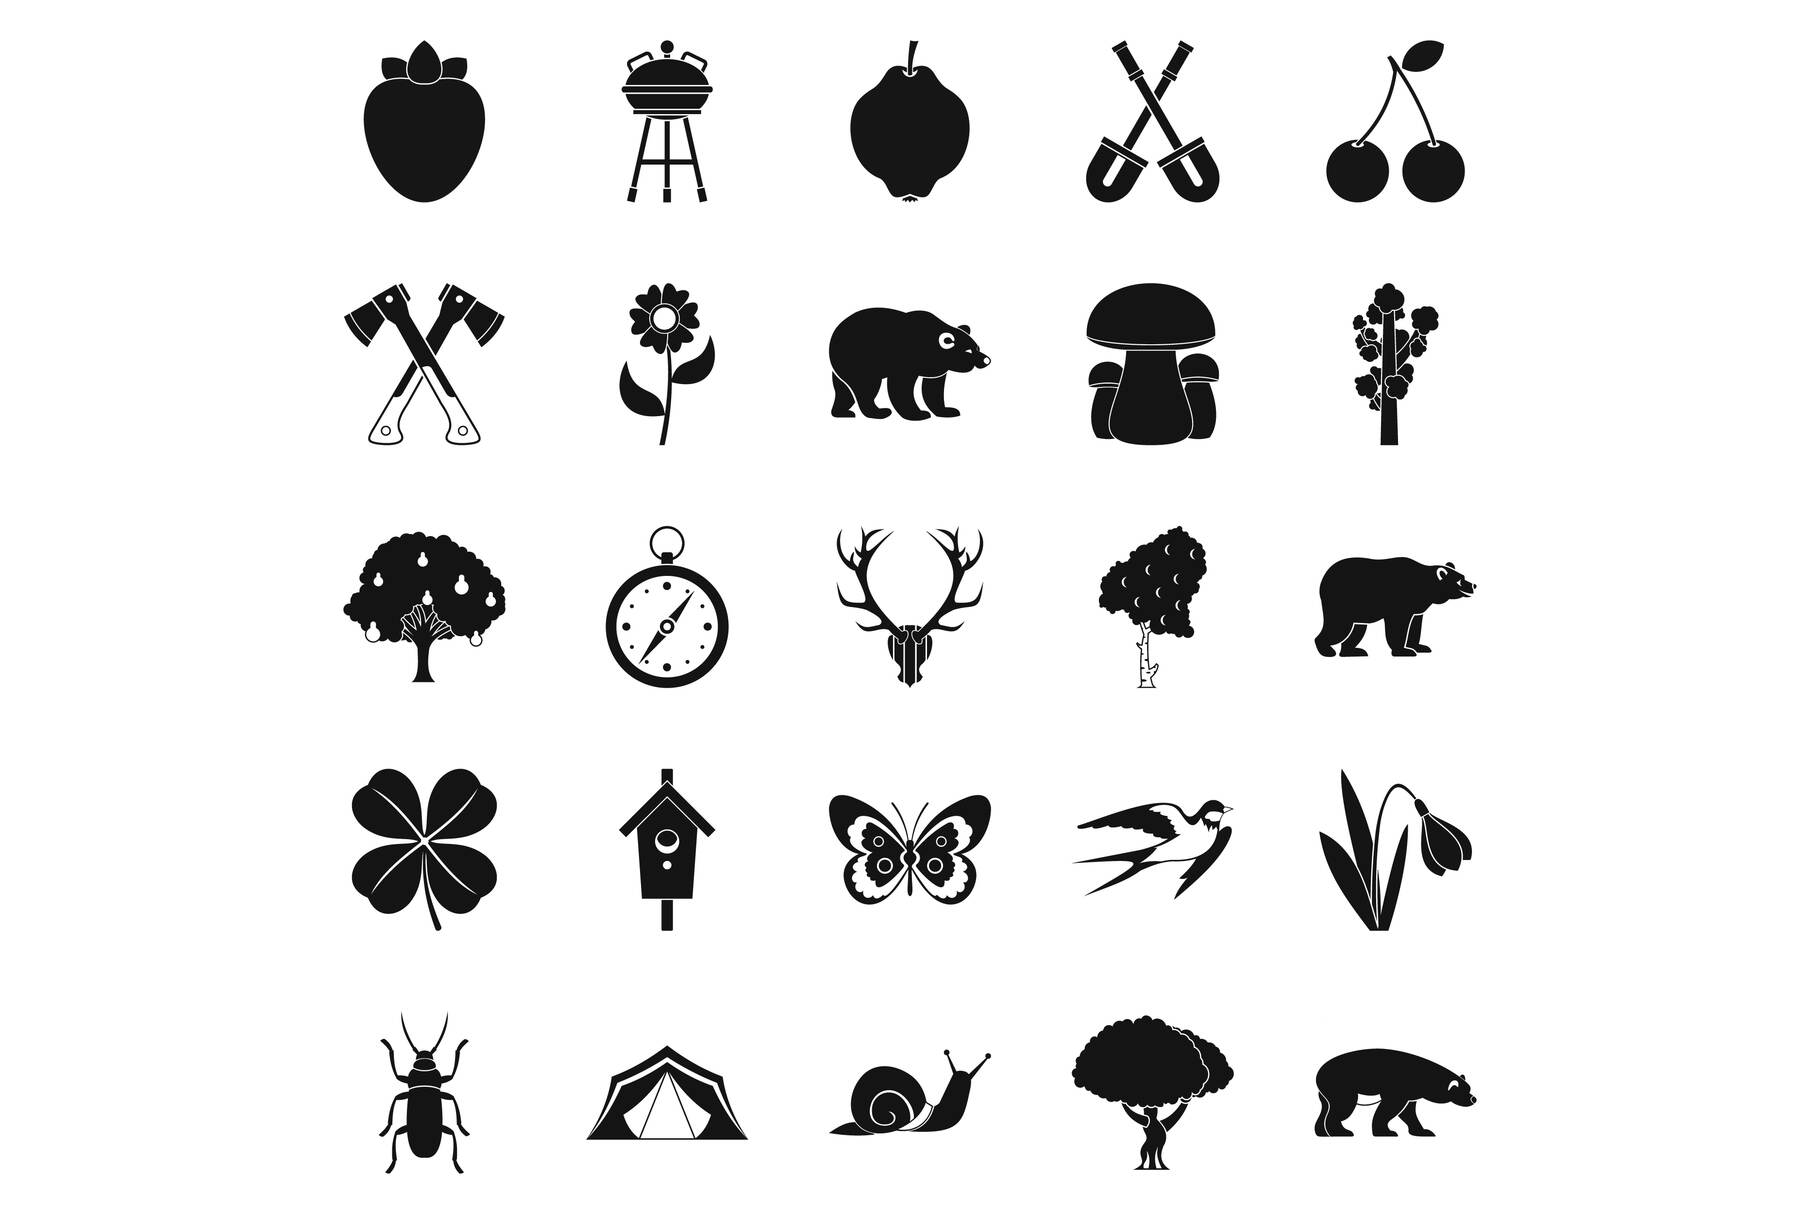 Trekking in the wild icons set, simple style example image 1